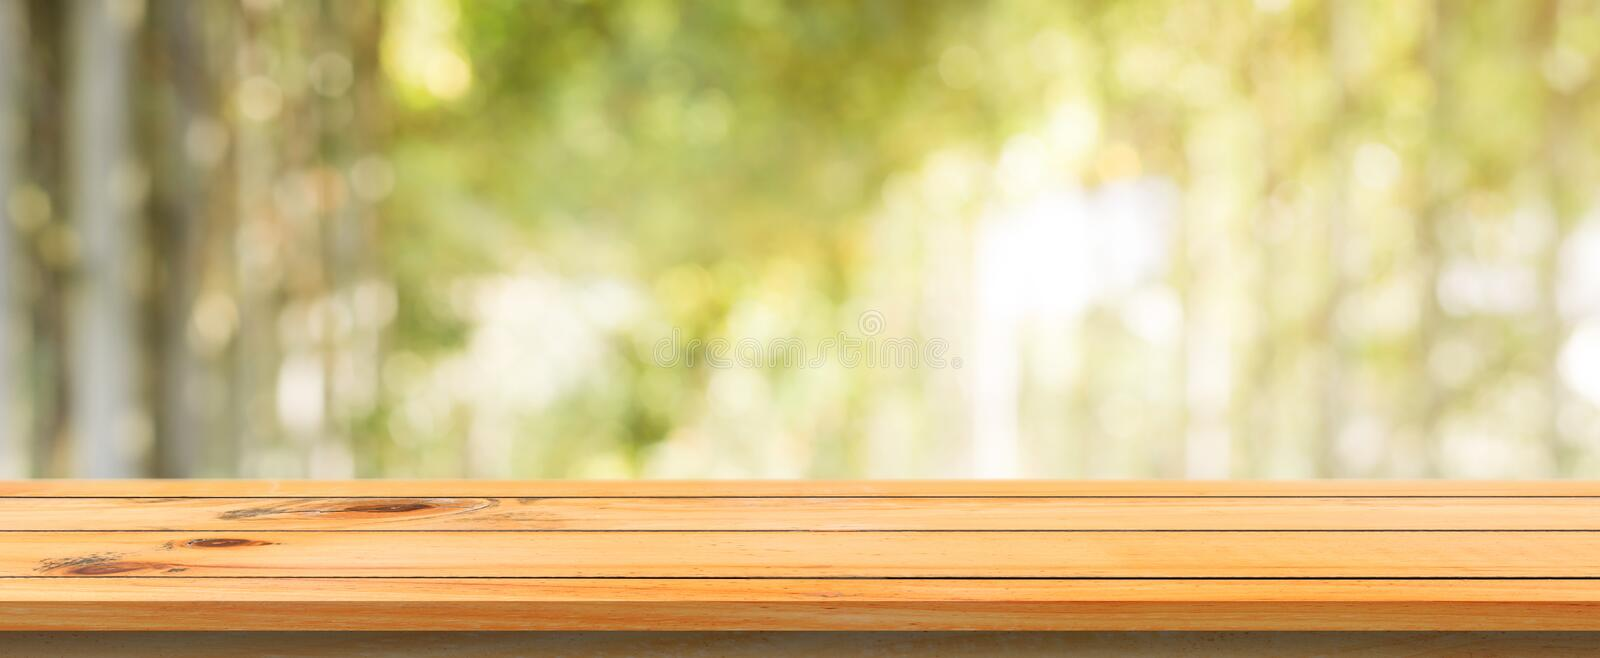 Wooden board empty table blurred background. Perspective brown wood table over blur trees forest background. royalty free stock photography